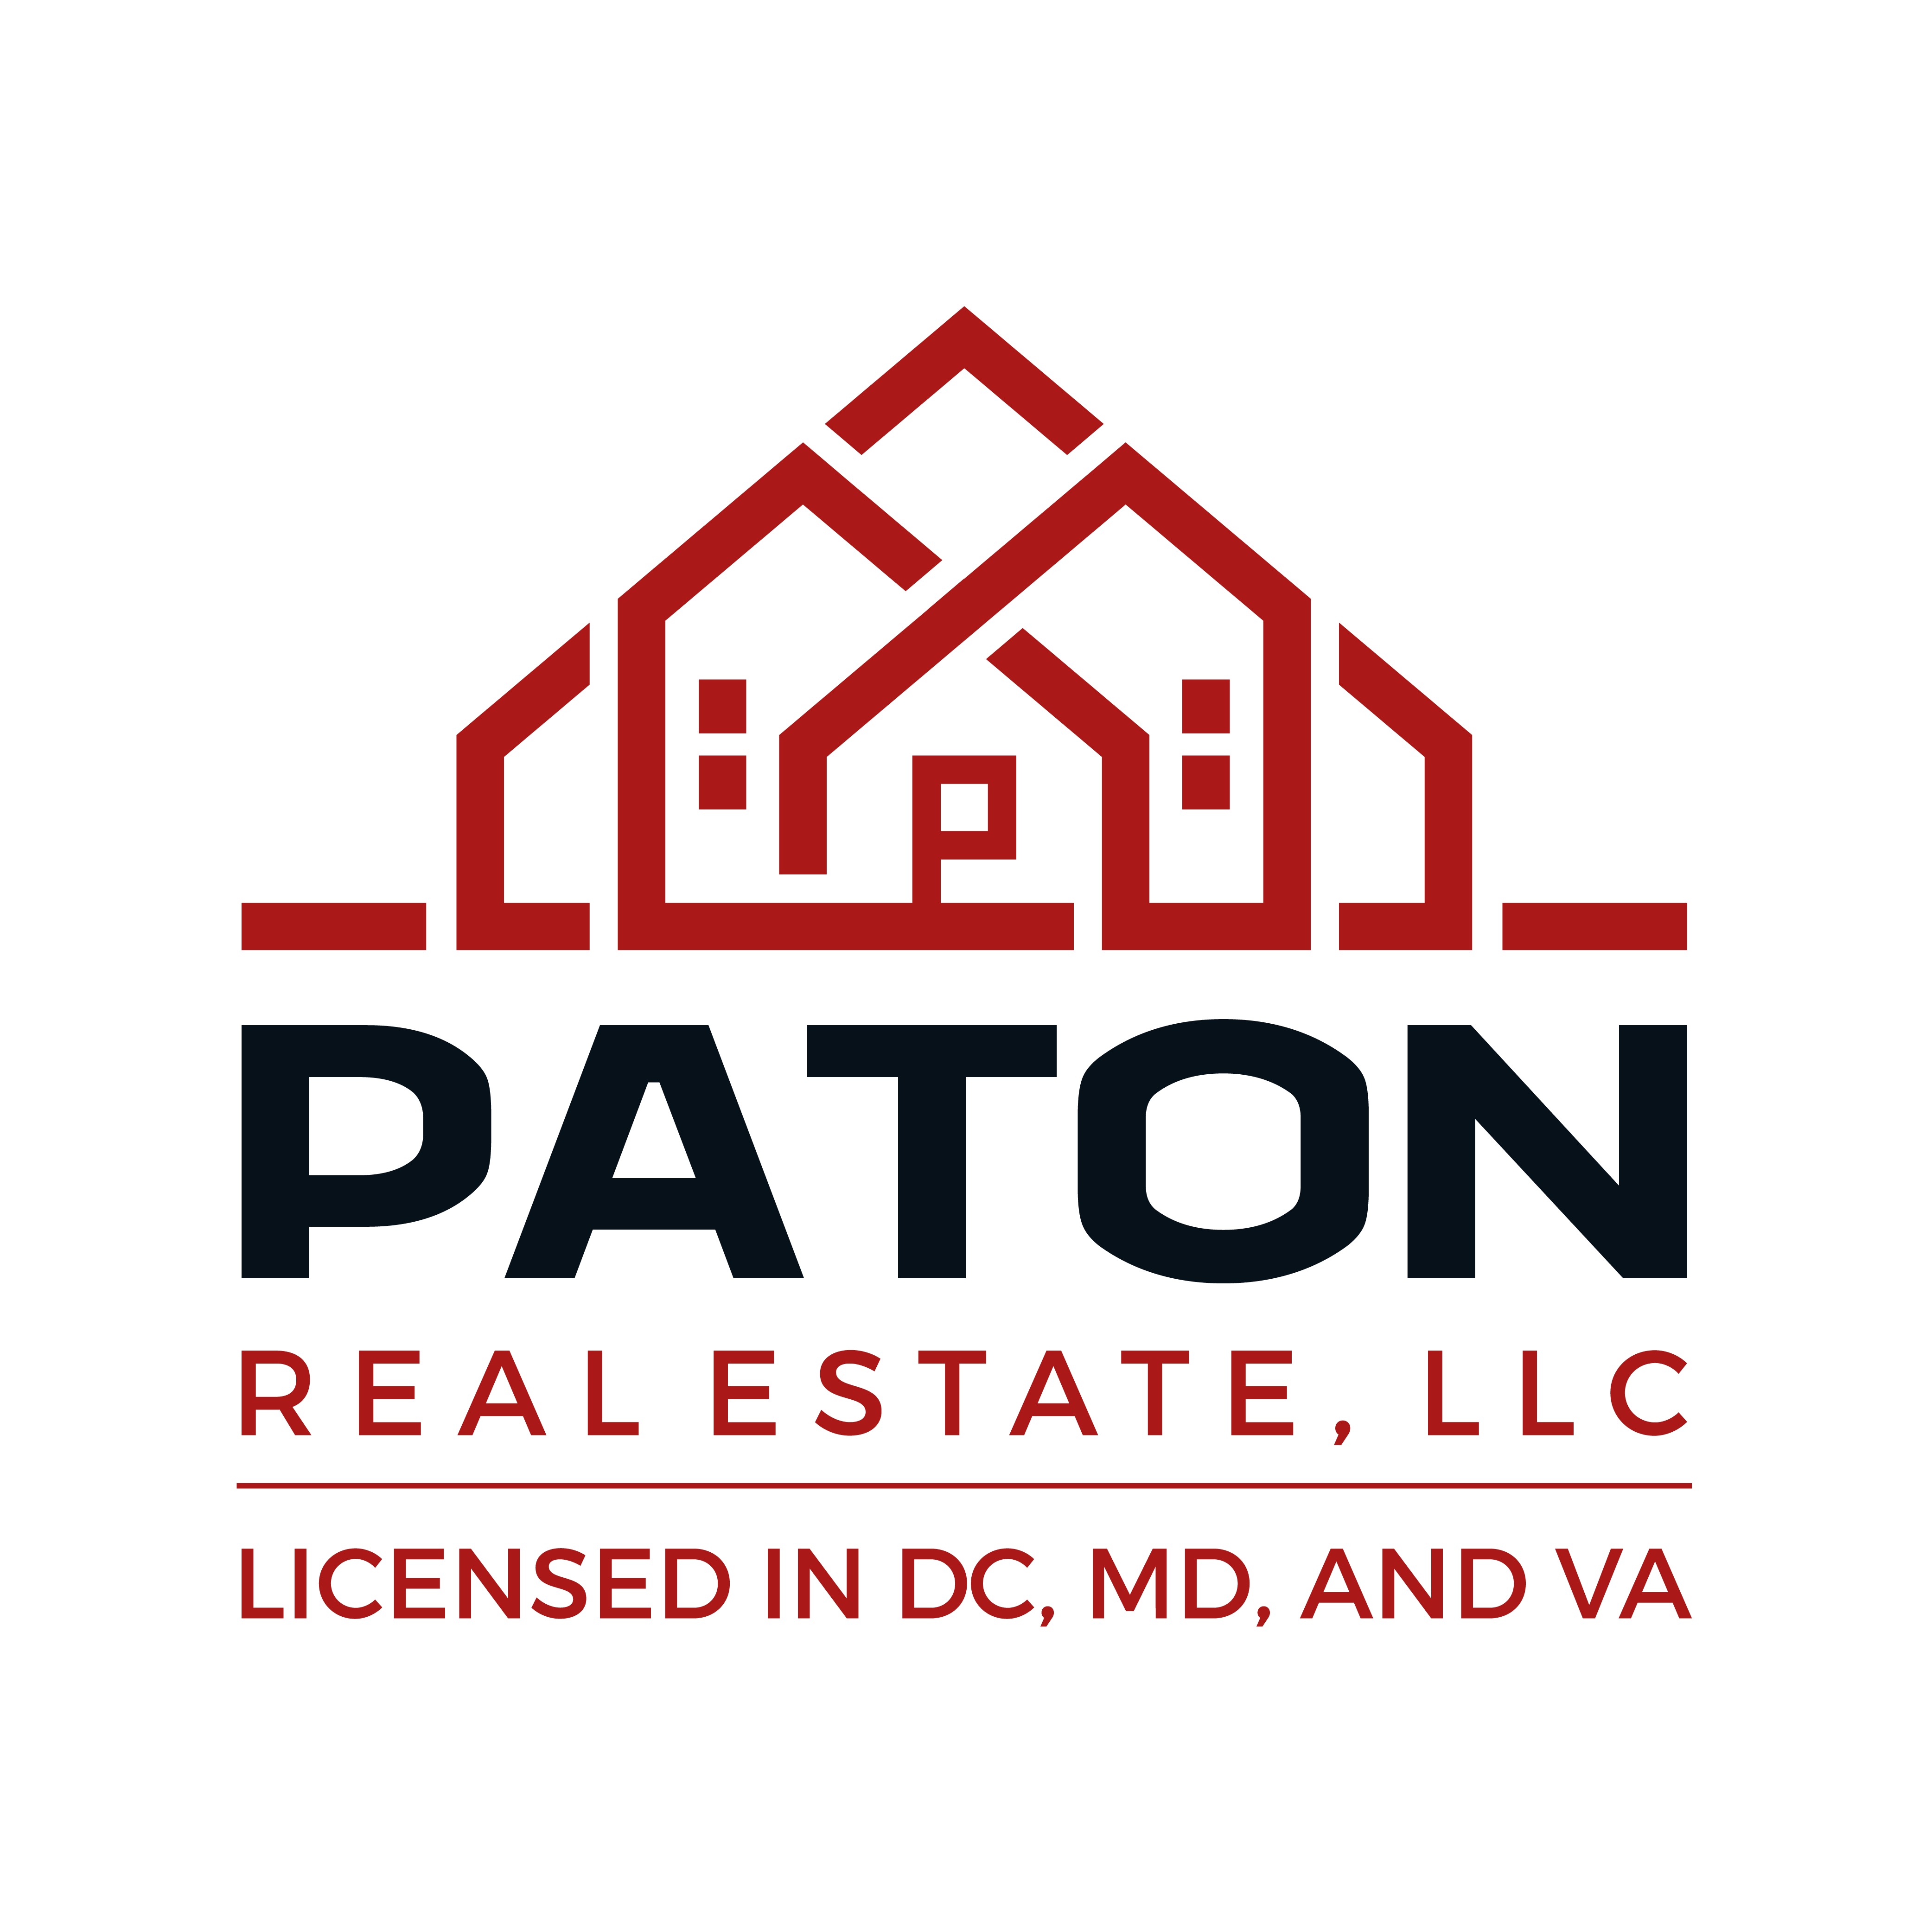 I need a hand drawn, stylized, unique logo or icon for selling houses